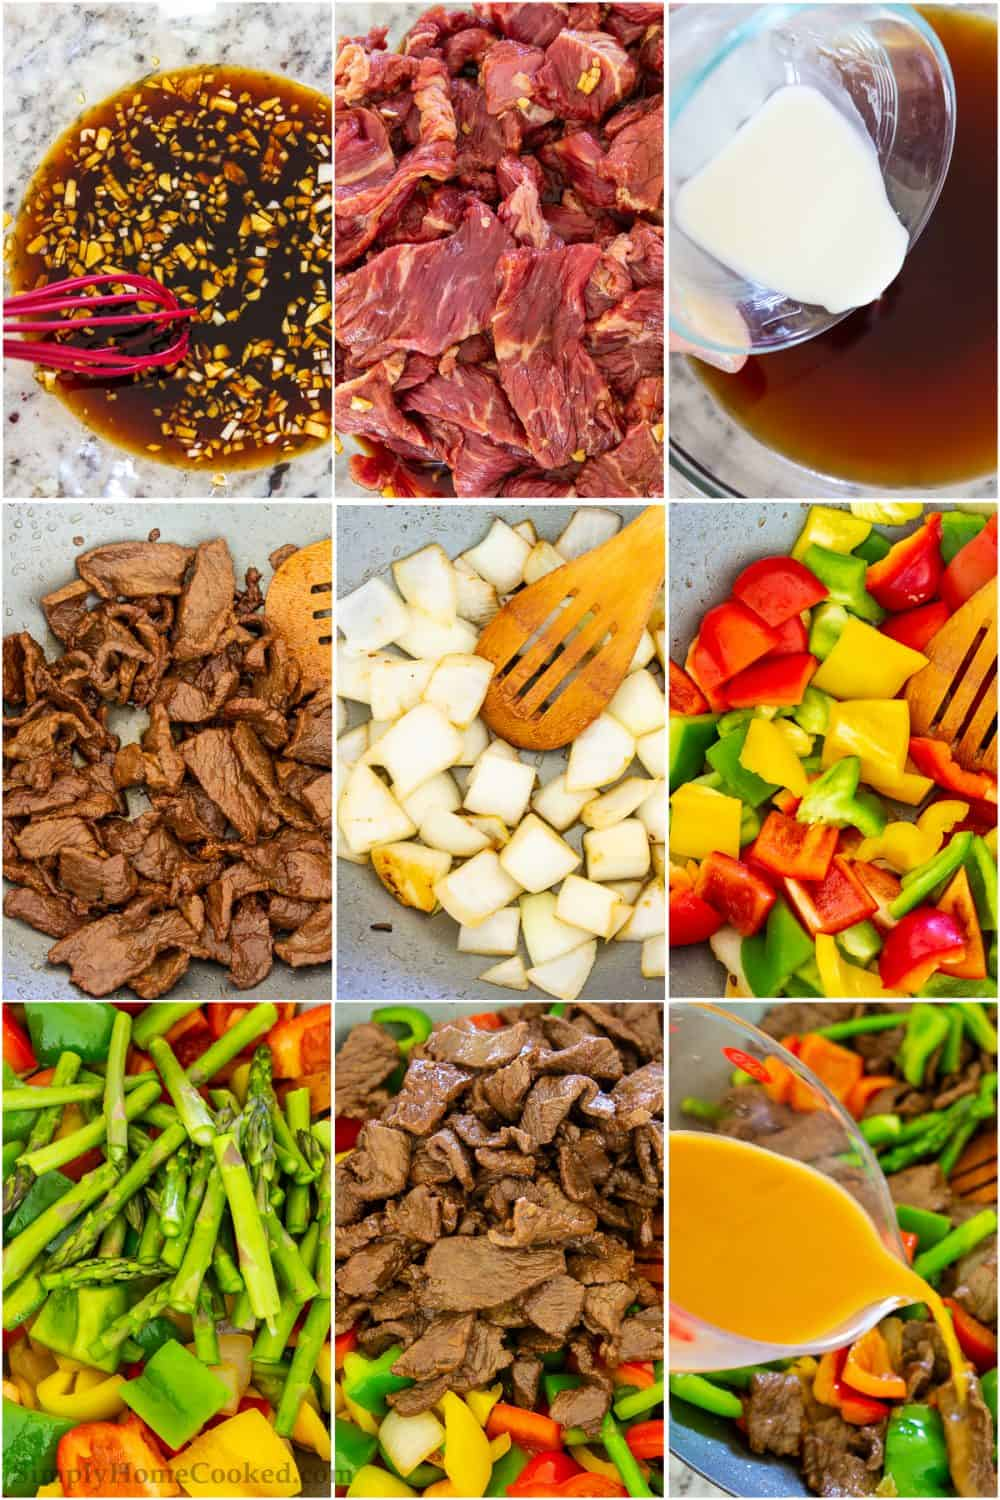 Nine tiles showing making a marinade, slicing steak, making a sauce, cooking the meat, sauteeing the onion and garlic, cooking the peppers and asparagus, and then cooking them altogether.